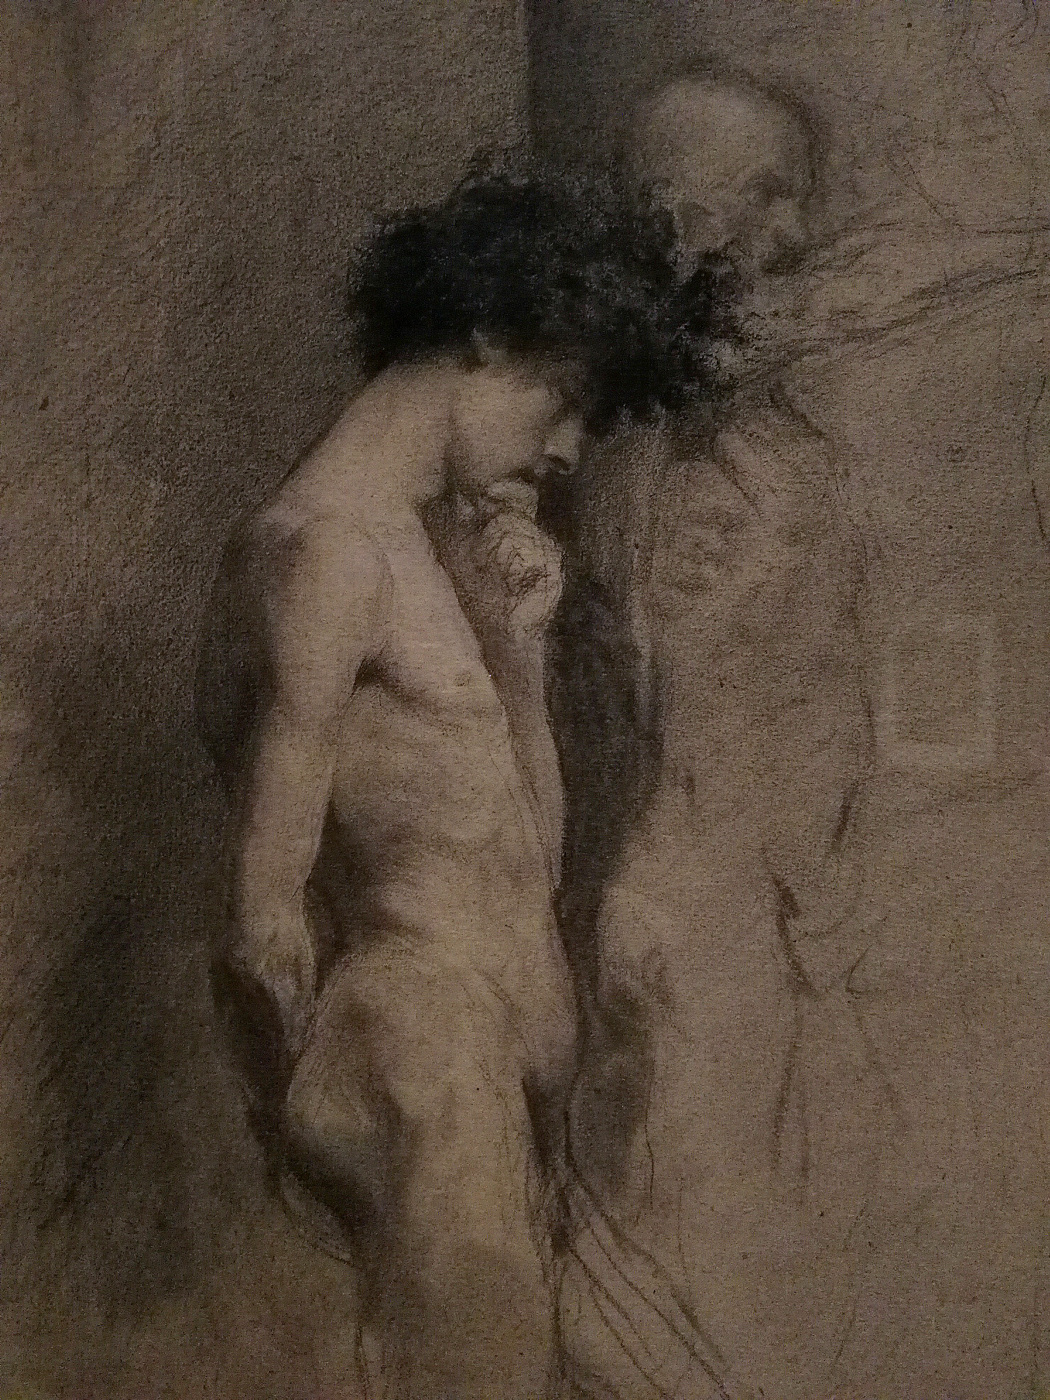 Mariano Fortuny y Marsal. The Nude figure of a man in profile, reflecting the sculpture (fragment)